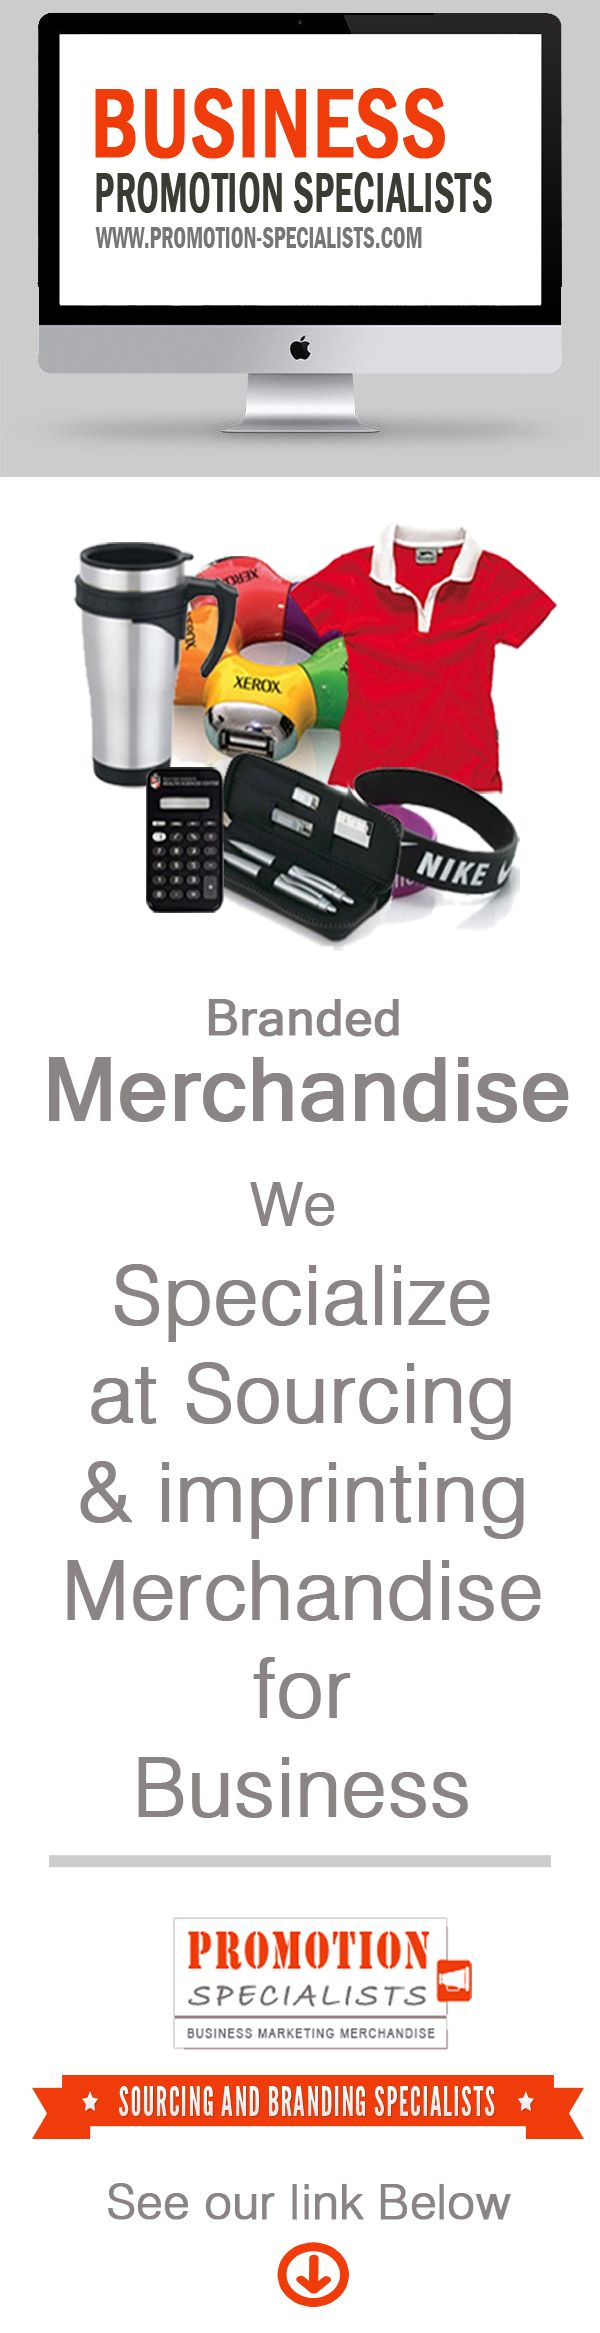 Let us source and imprint that perfect Promotional item or Gift  for your Business. Get a Free Consultation here:  http://www.promotion-specialists.com/contact-us/get-a-free-consultation/